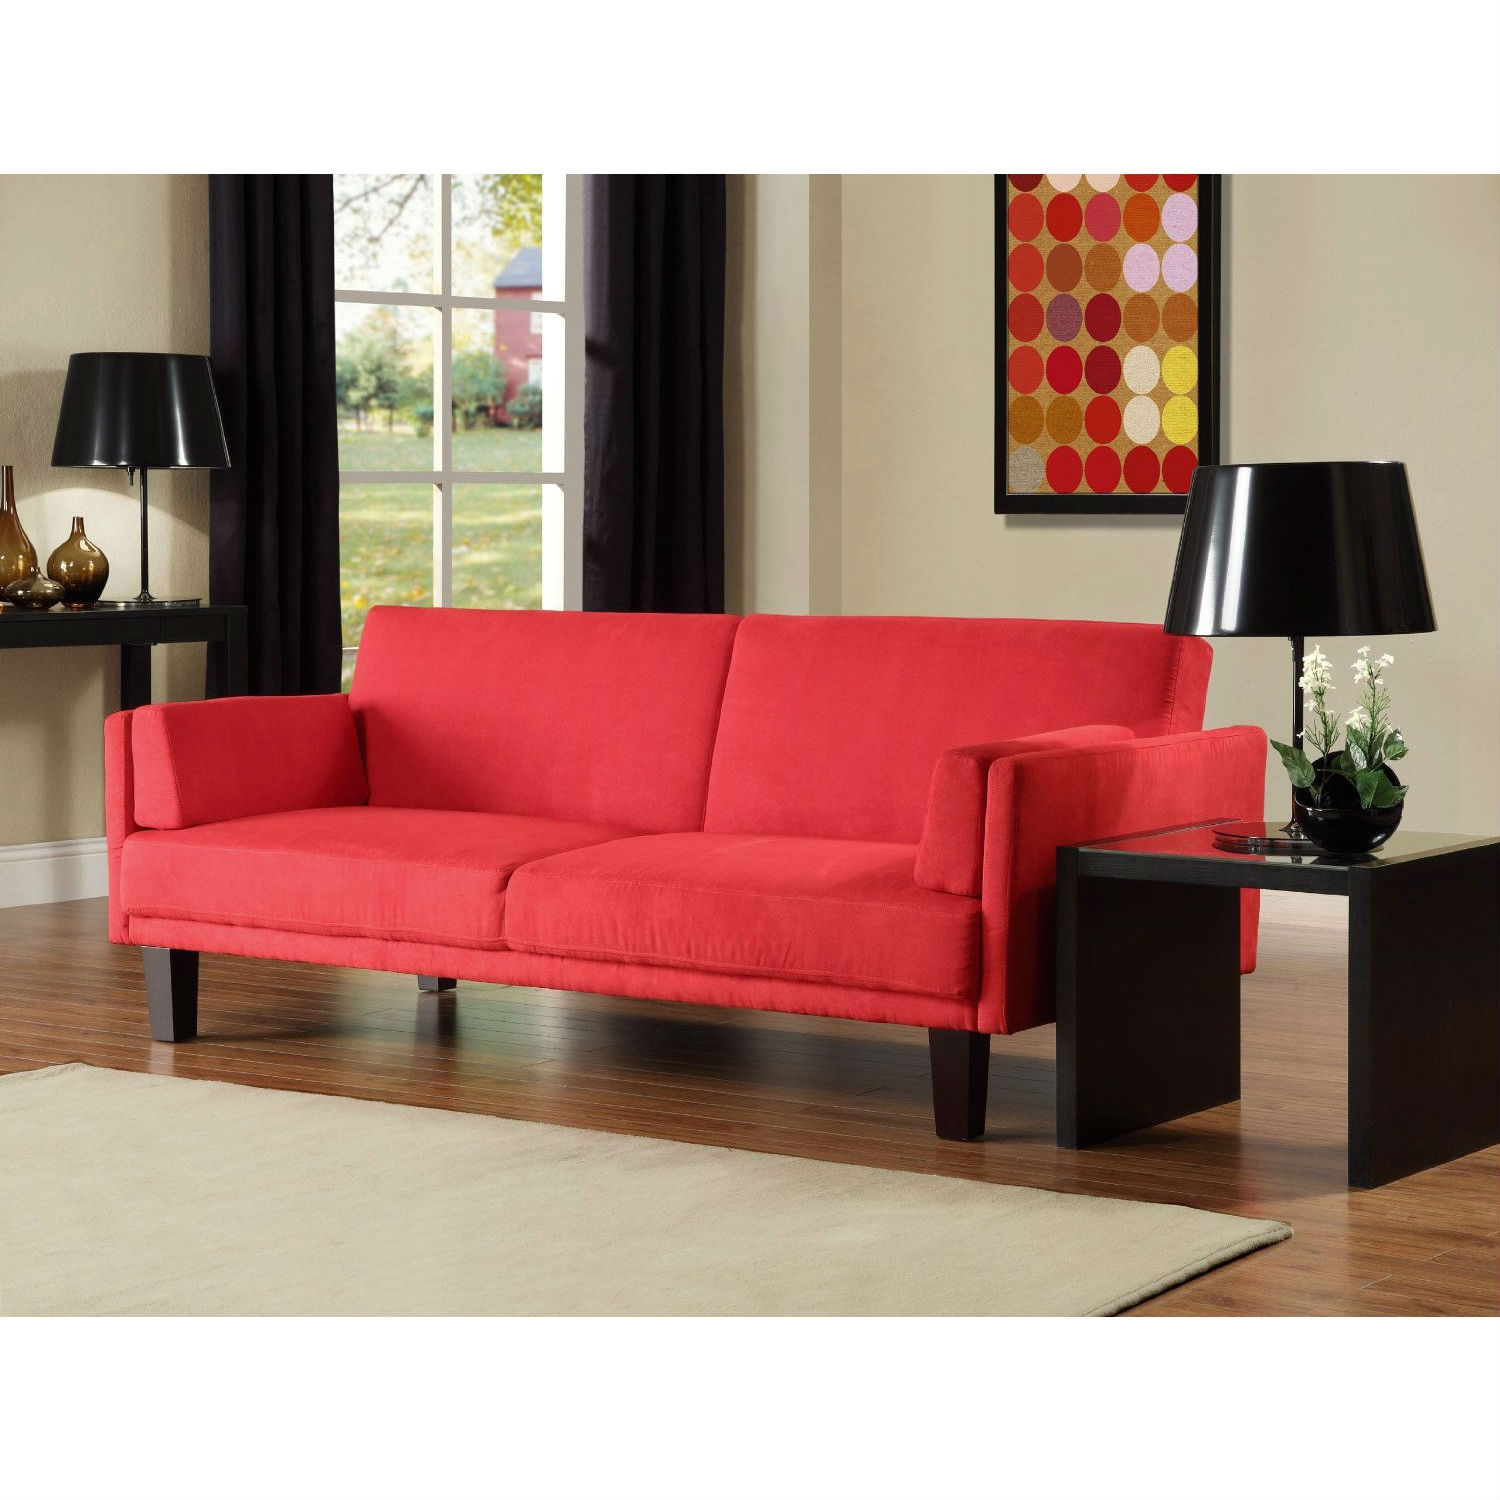 Contemporary Mid Century Style Sofa Bed in Red Microfiber